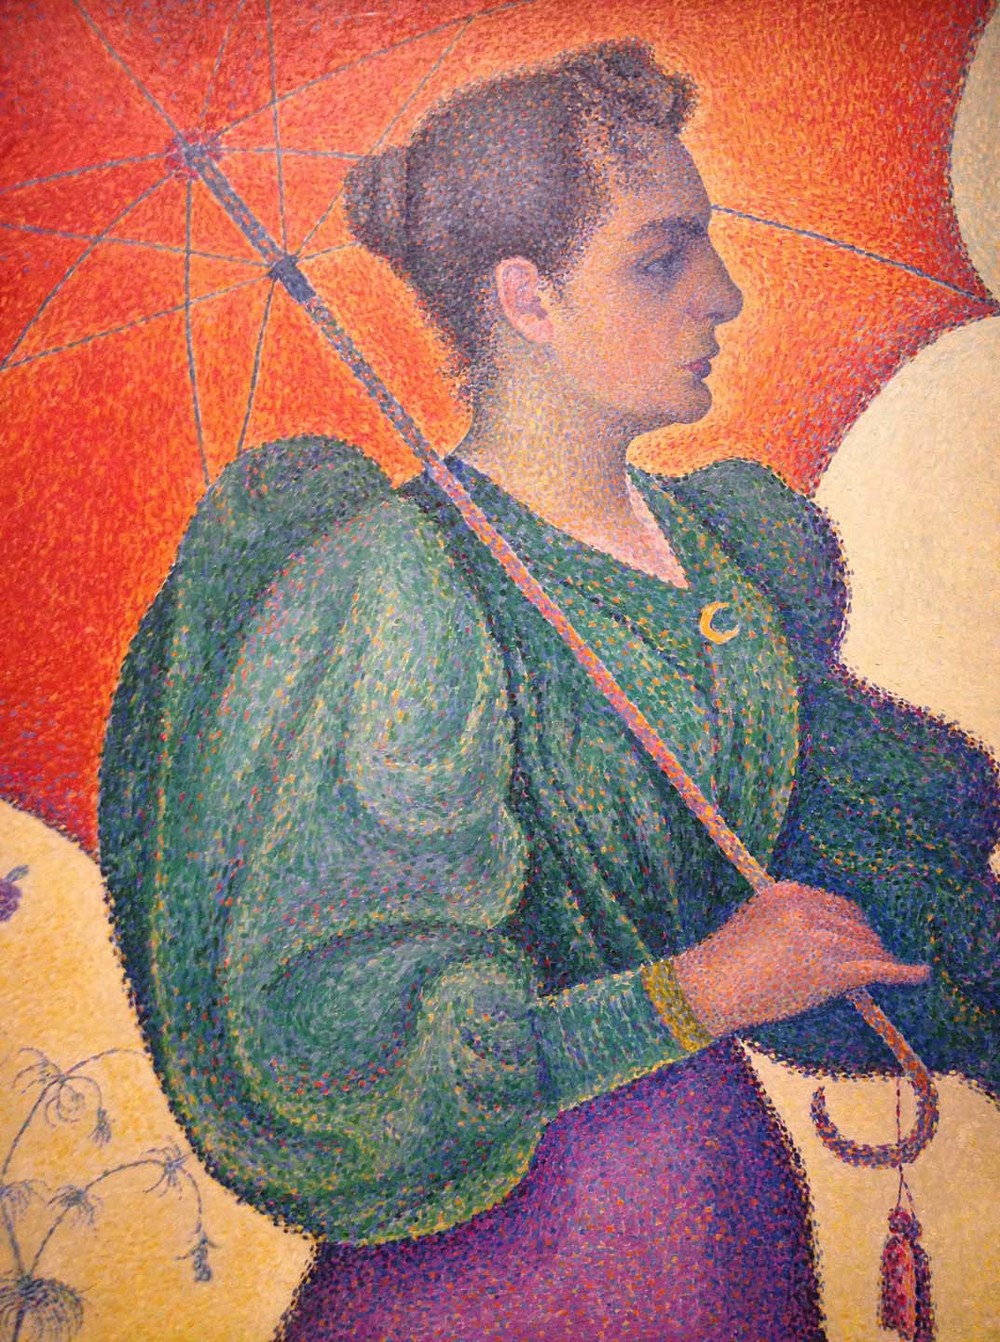 Signac- Woman with Parasol